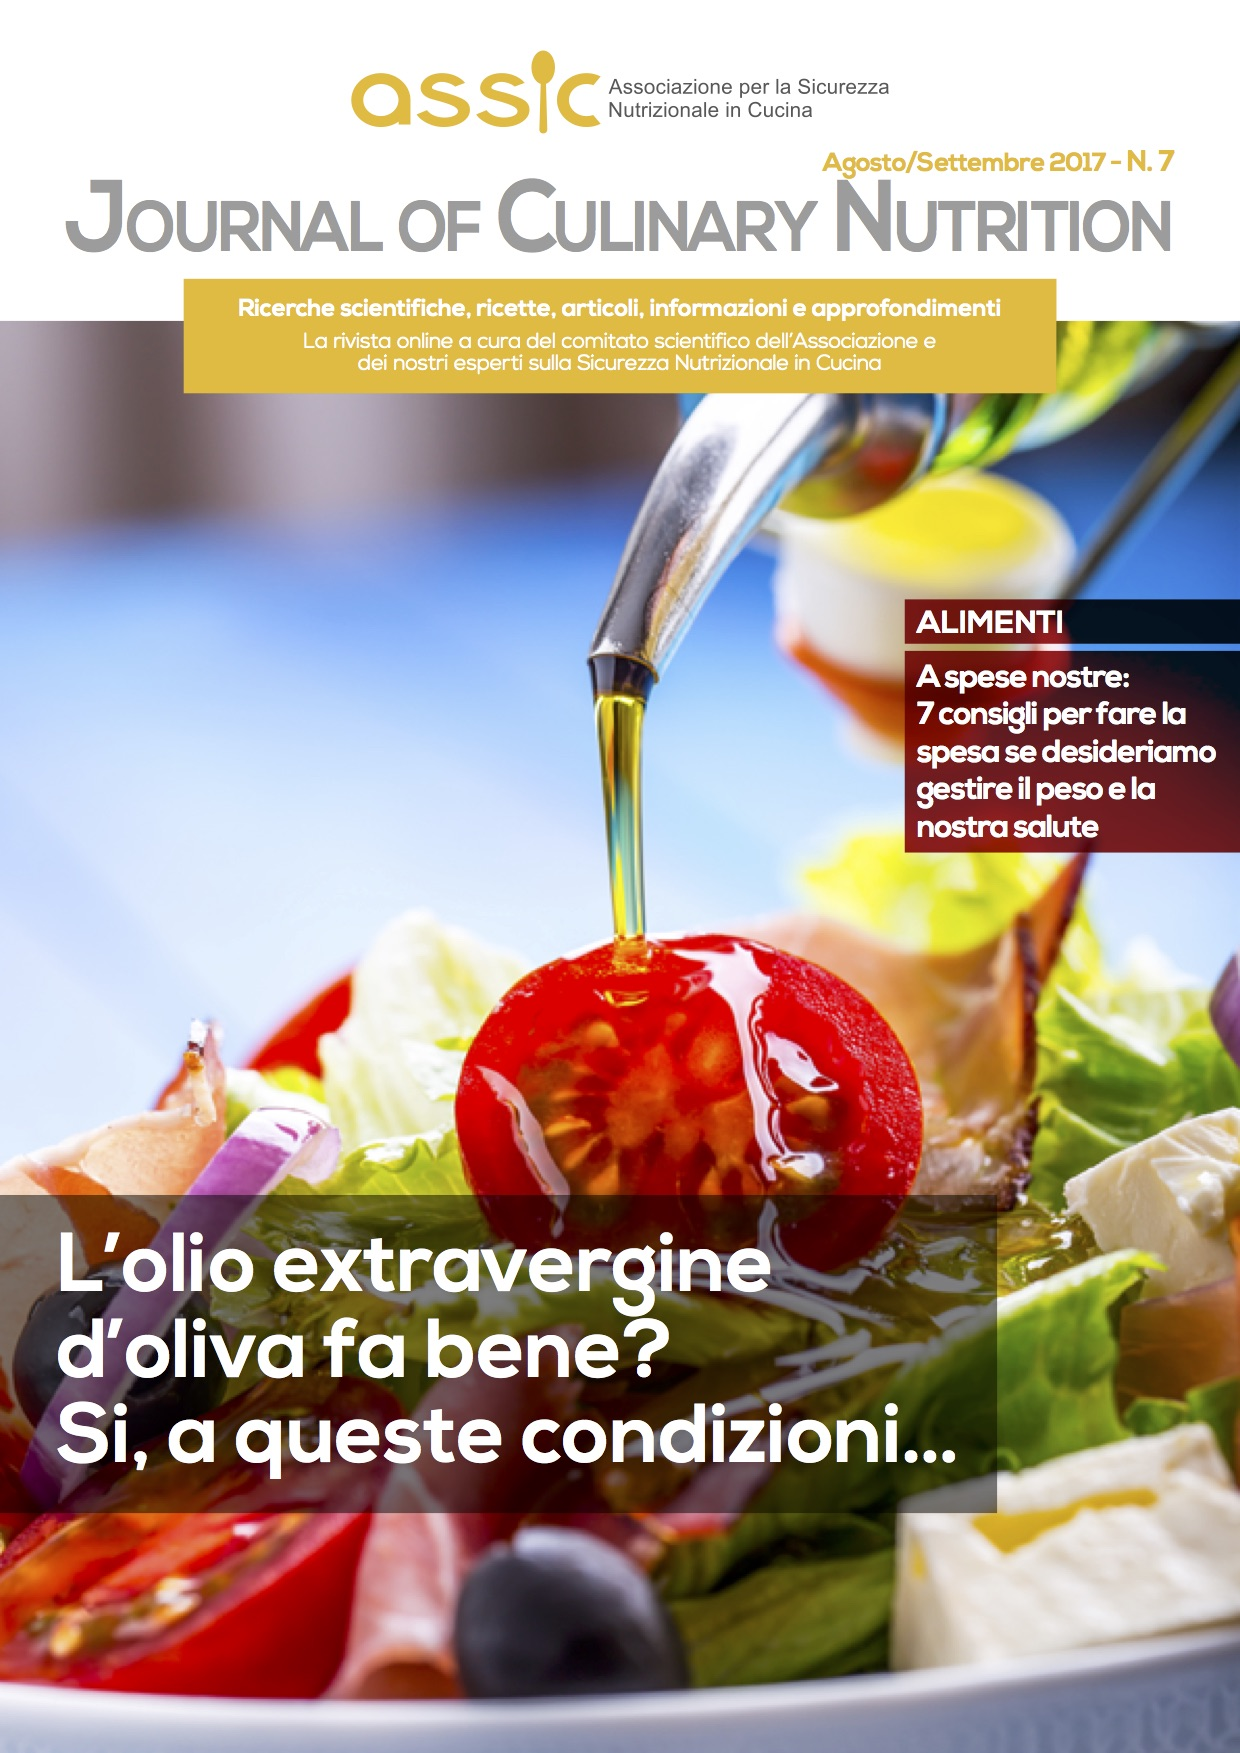 Journal of Culinary Nutrition -Numero 7- Agosto:Settembre